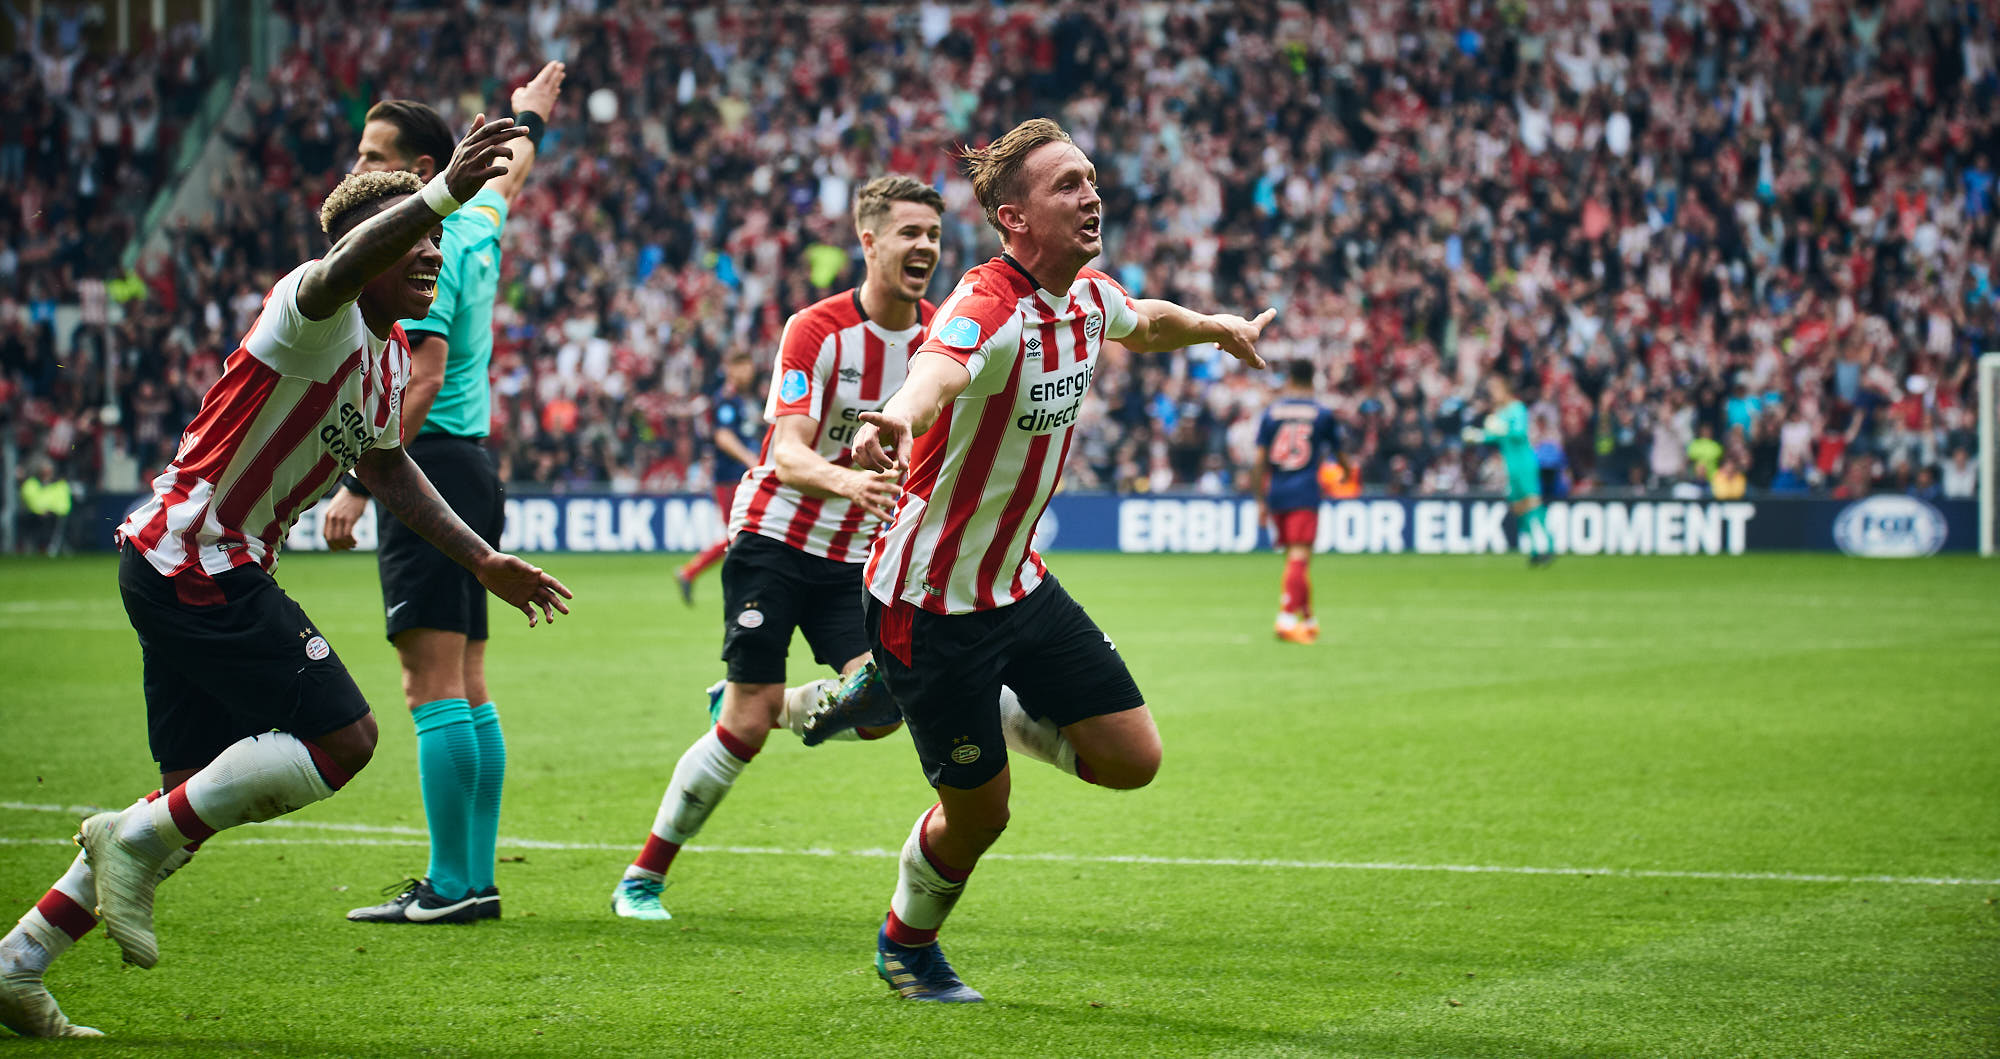 An ecstatic Luuk de Jong after having scored a goal